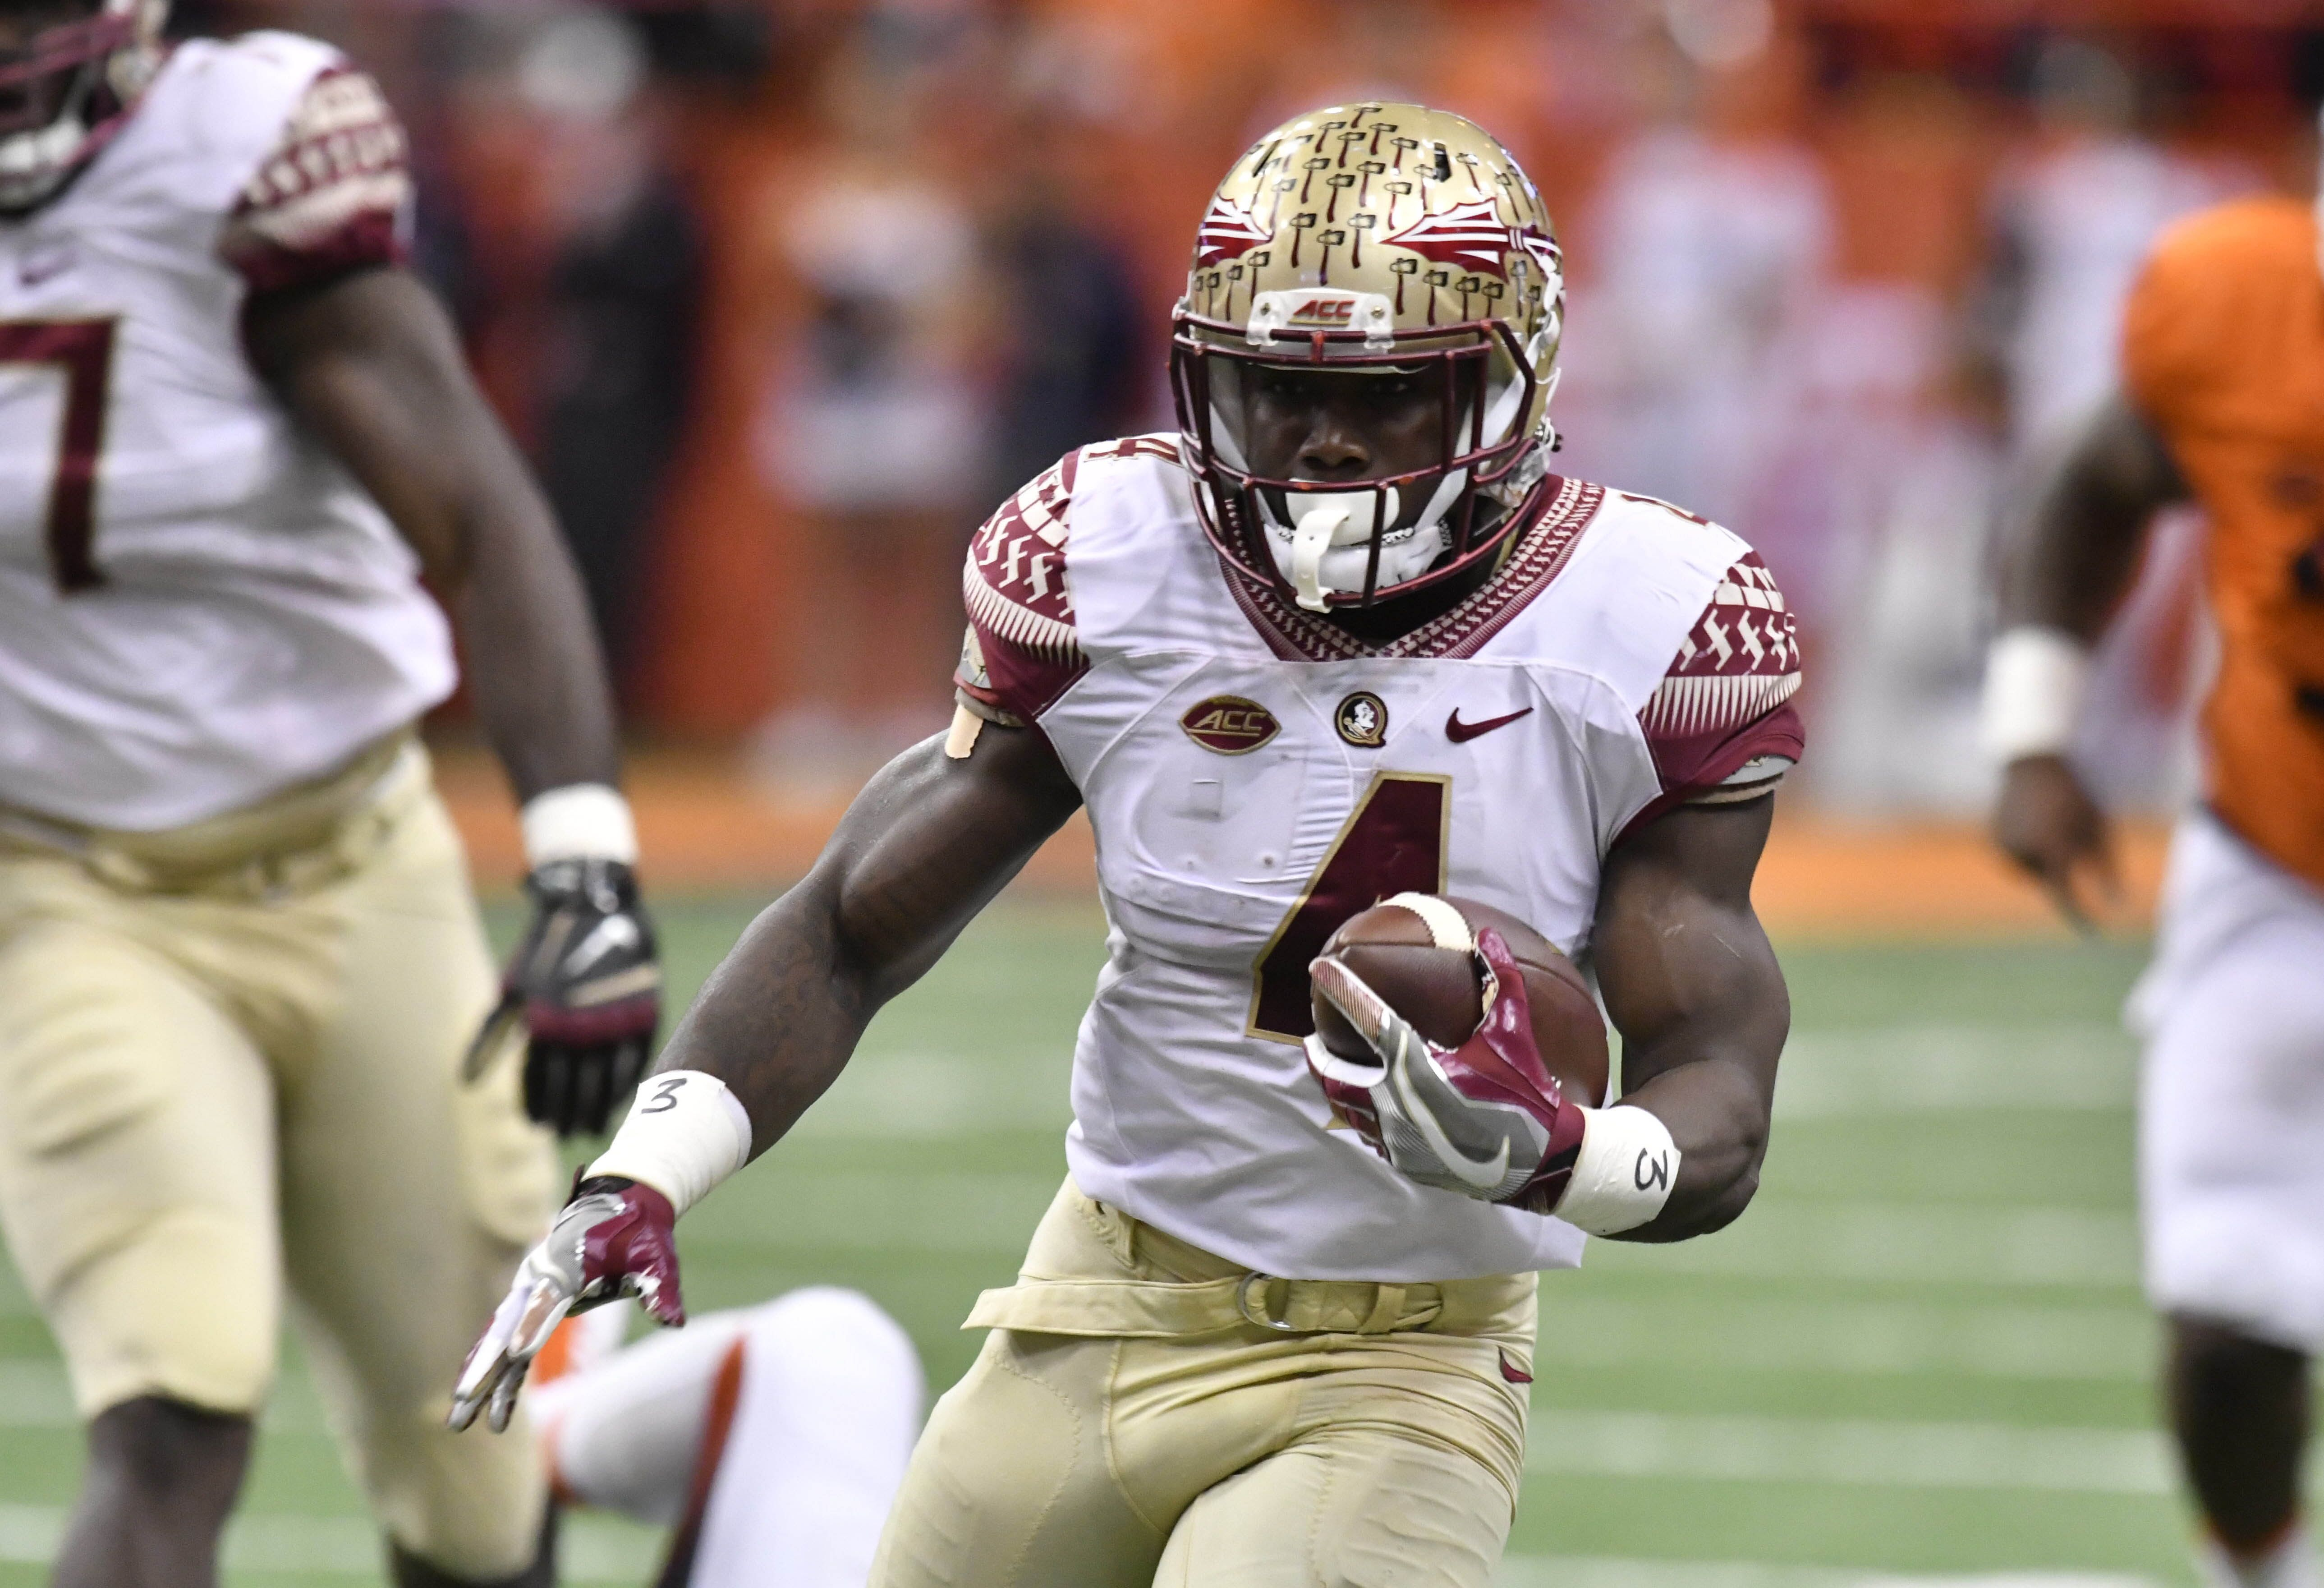 Fsu Football Jimbo Fisher Owning Rivals Even With Less Nfl Draft